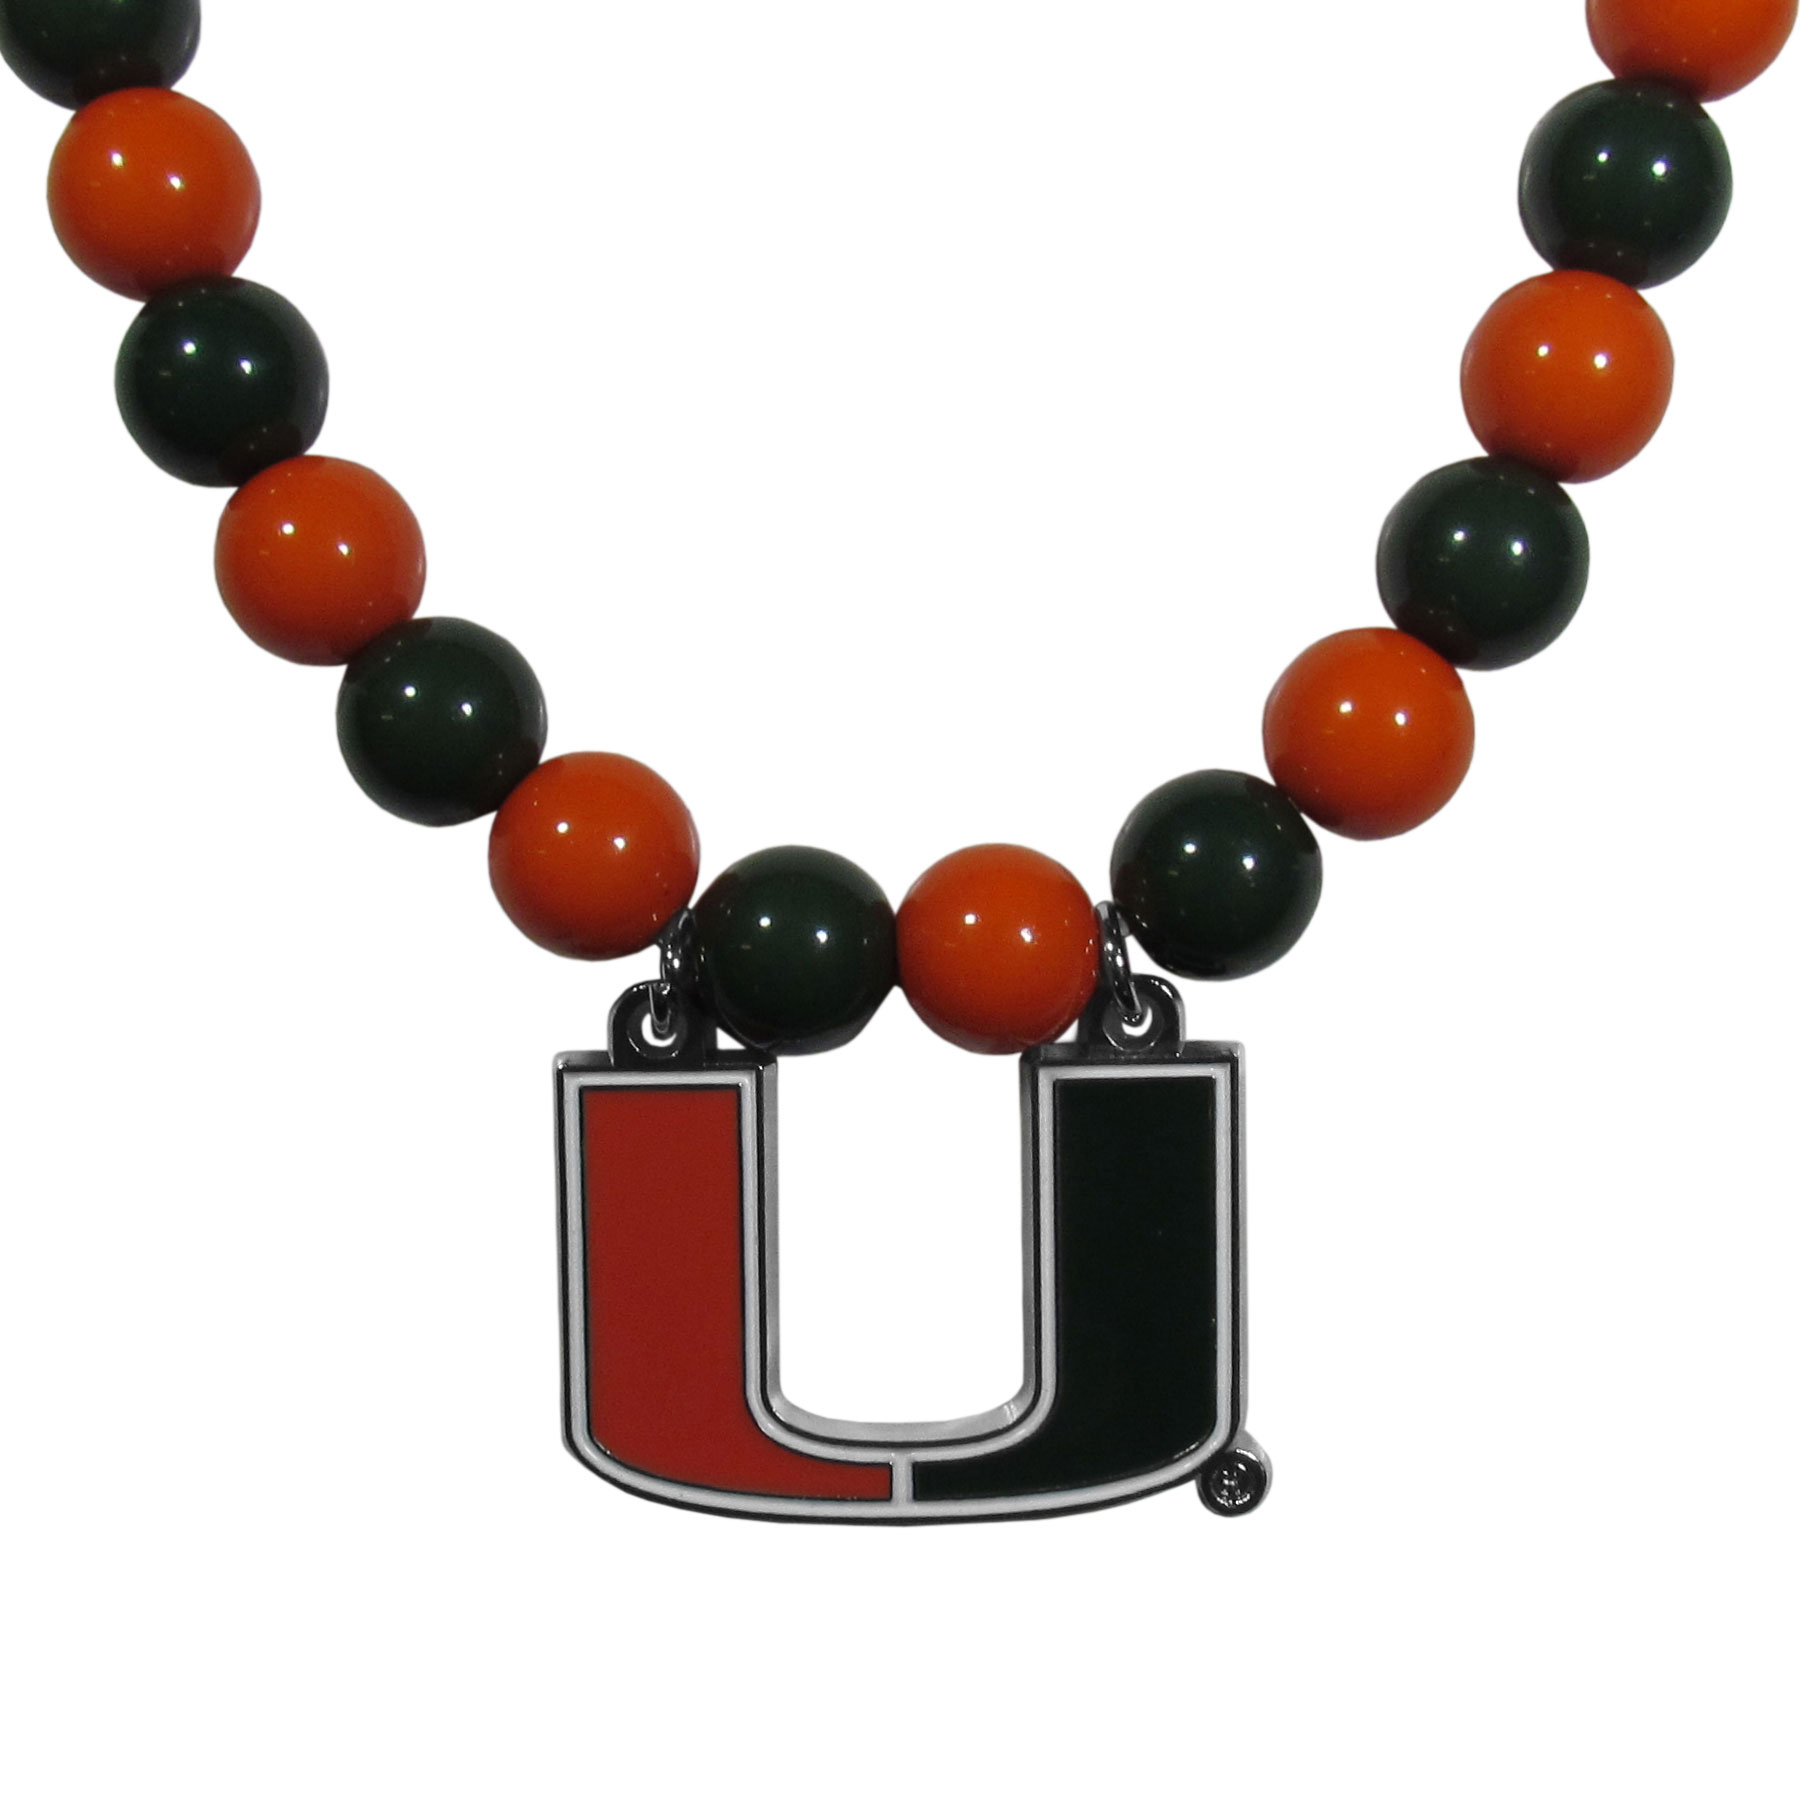 Miami Hurricanes Fan Bead Necklace - Make a big statement with our fan bead necklaces! These brightly colored necklace have a 24 inch string of alternating colored beads with an extra large, high-polish Miami Hurricanes pendant.